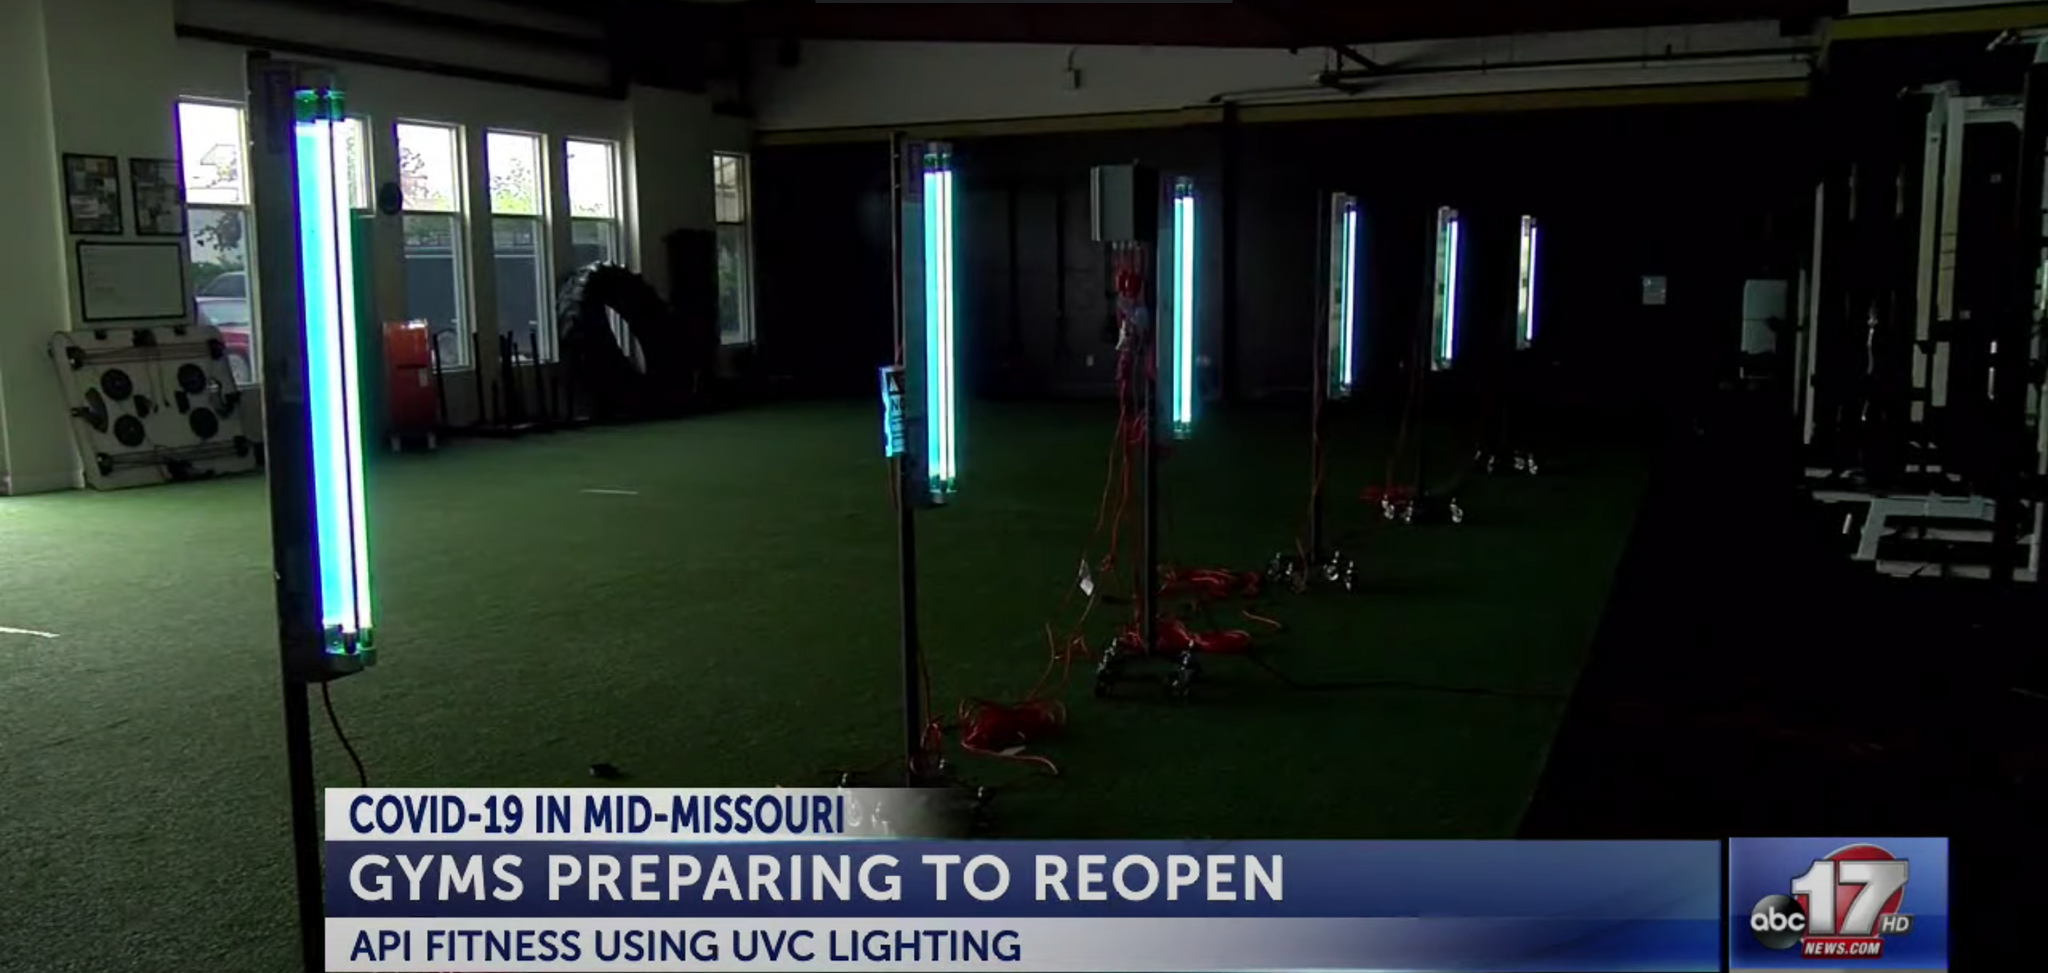 Local gym using UVC lights to disinfect facility